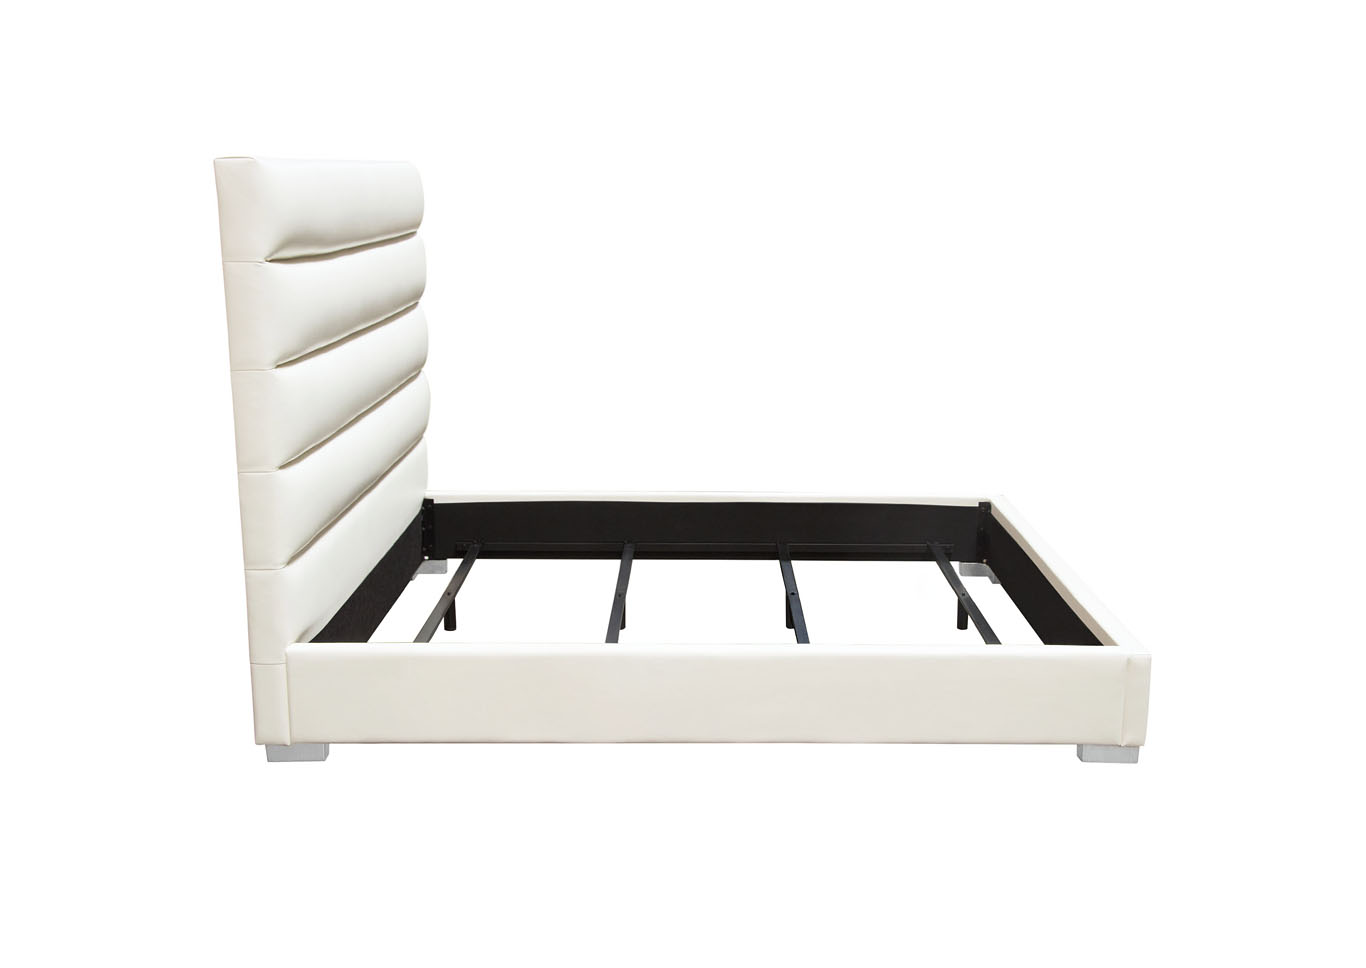 Bardot Channel White Tufted California King Bed,Diamond Sofa